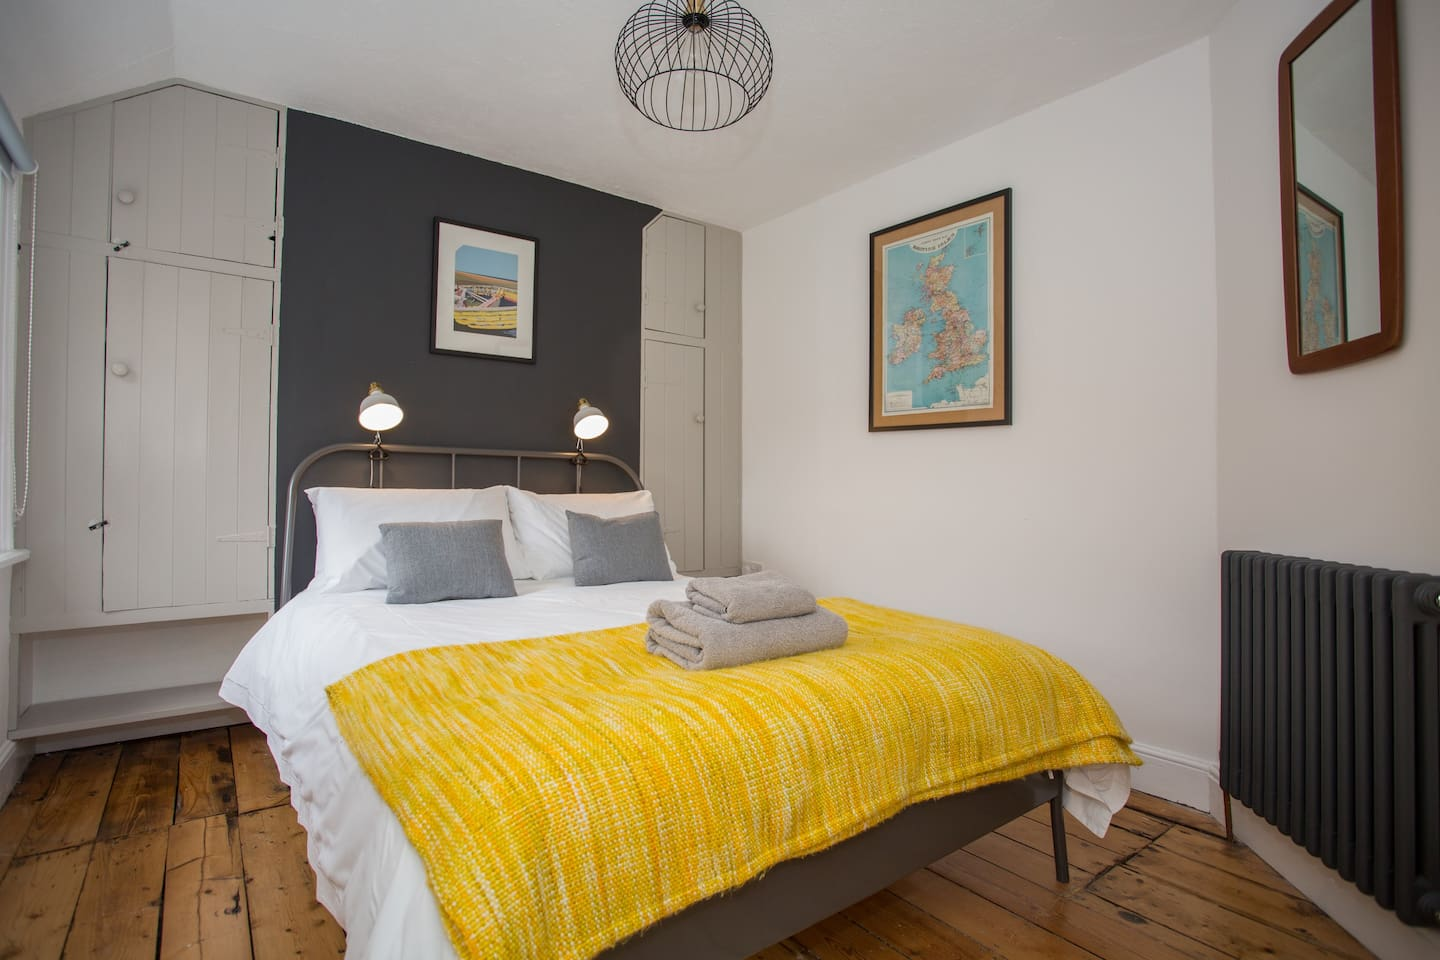 Super comfy double bed with crisp white bed linen & black out blind